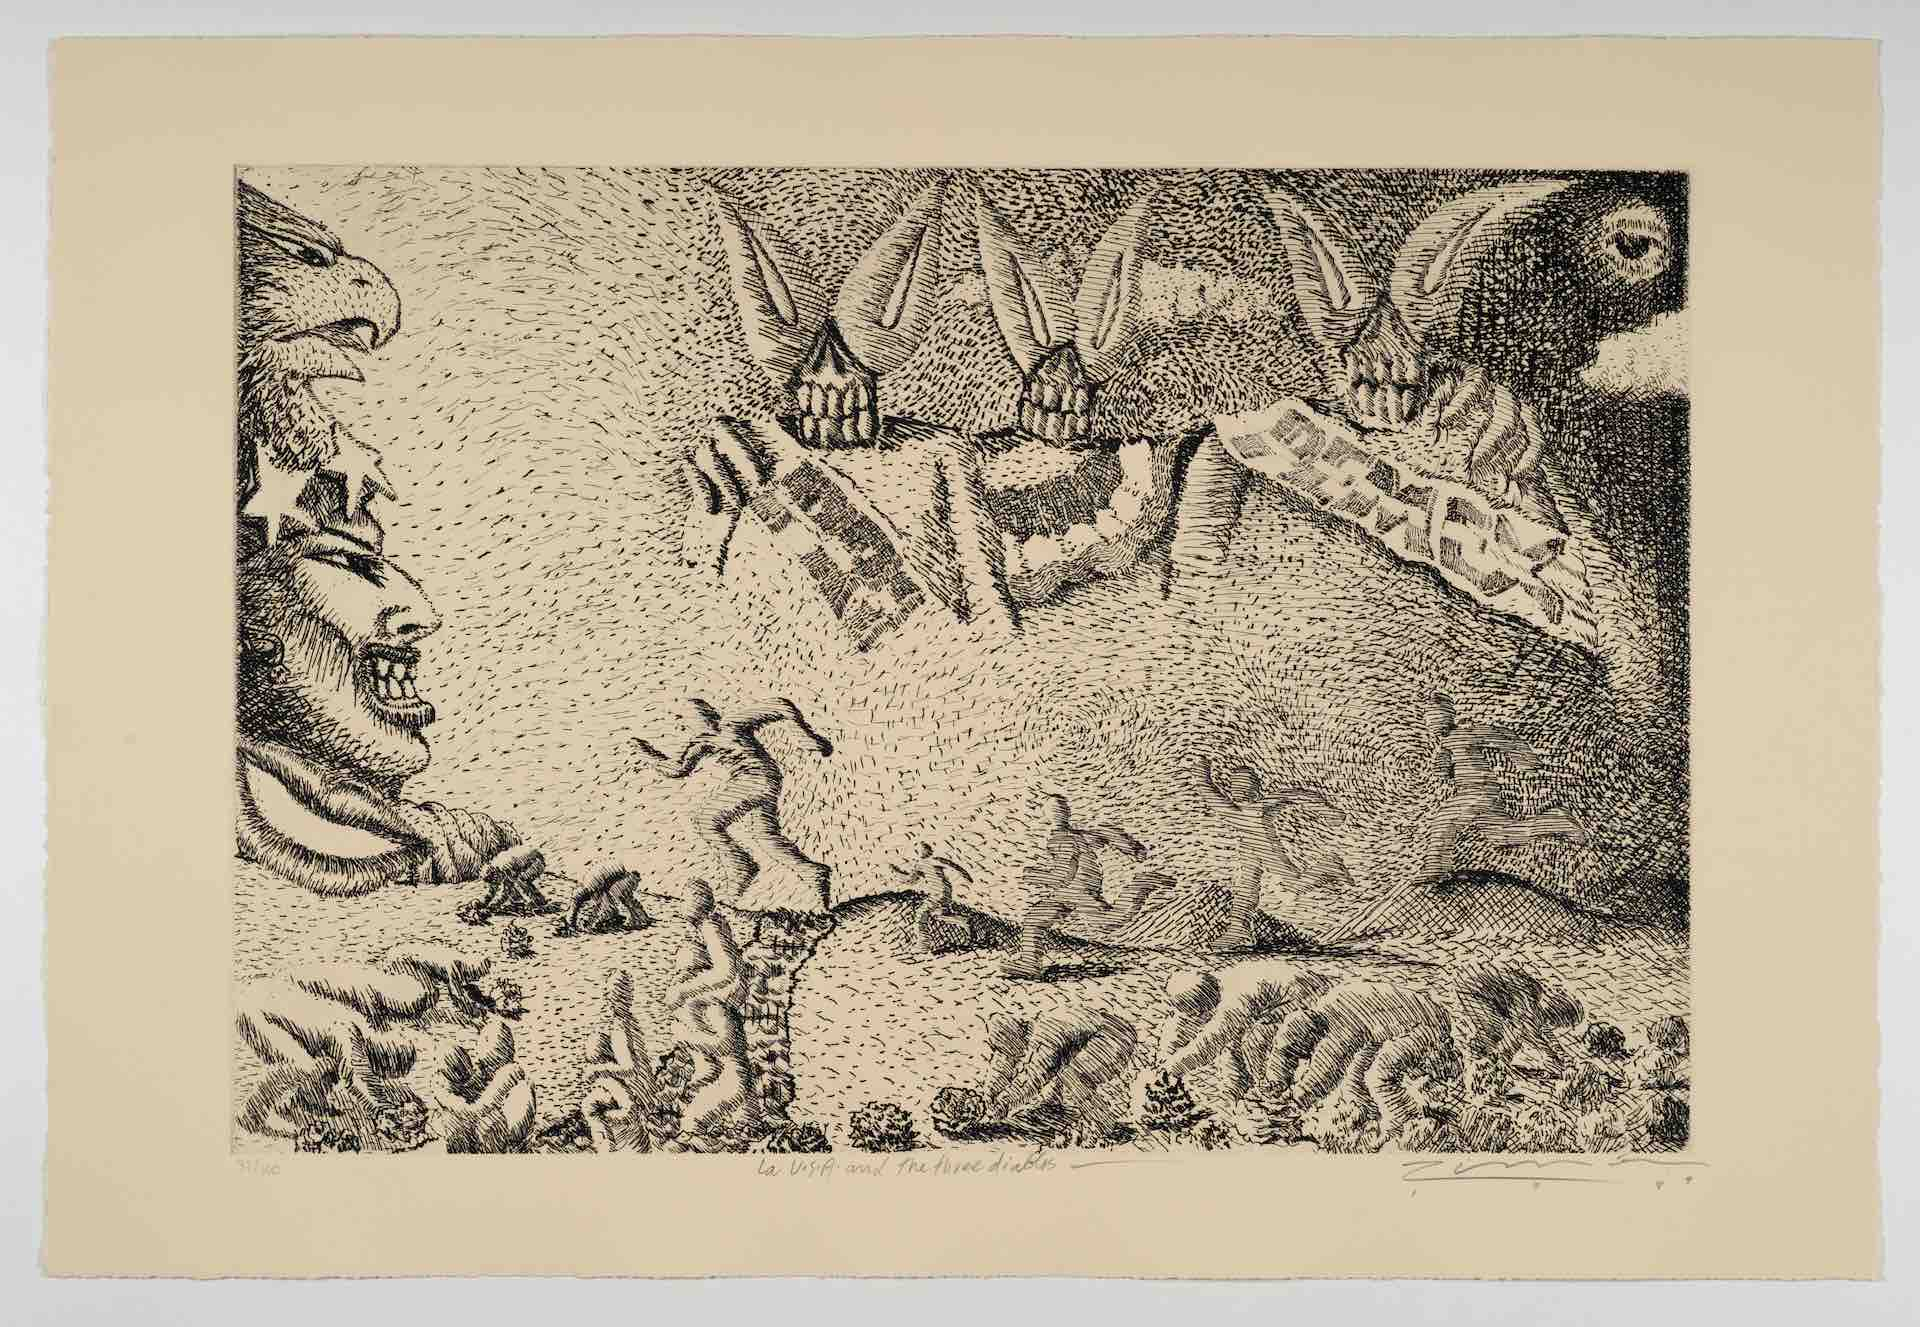 Léo Limőn, La U.S.A. and the three diablos [The EE.UU. y los tres devils], from The New Immigration series, 1988, etching, 14 15/16 x 22 1/16 in. (37.9 x 56.1 cm), Featuring figures running toward the left while some bend over to pick plants and three devils float in the sky, Blanton Museum of Art, The University of Texas at Austin, Gift of Gilberto Cardenas, 2017